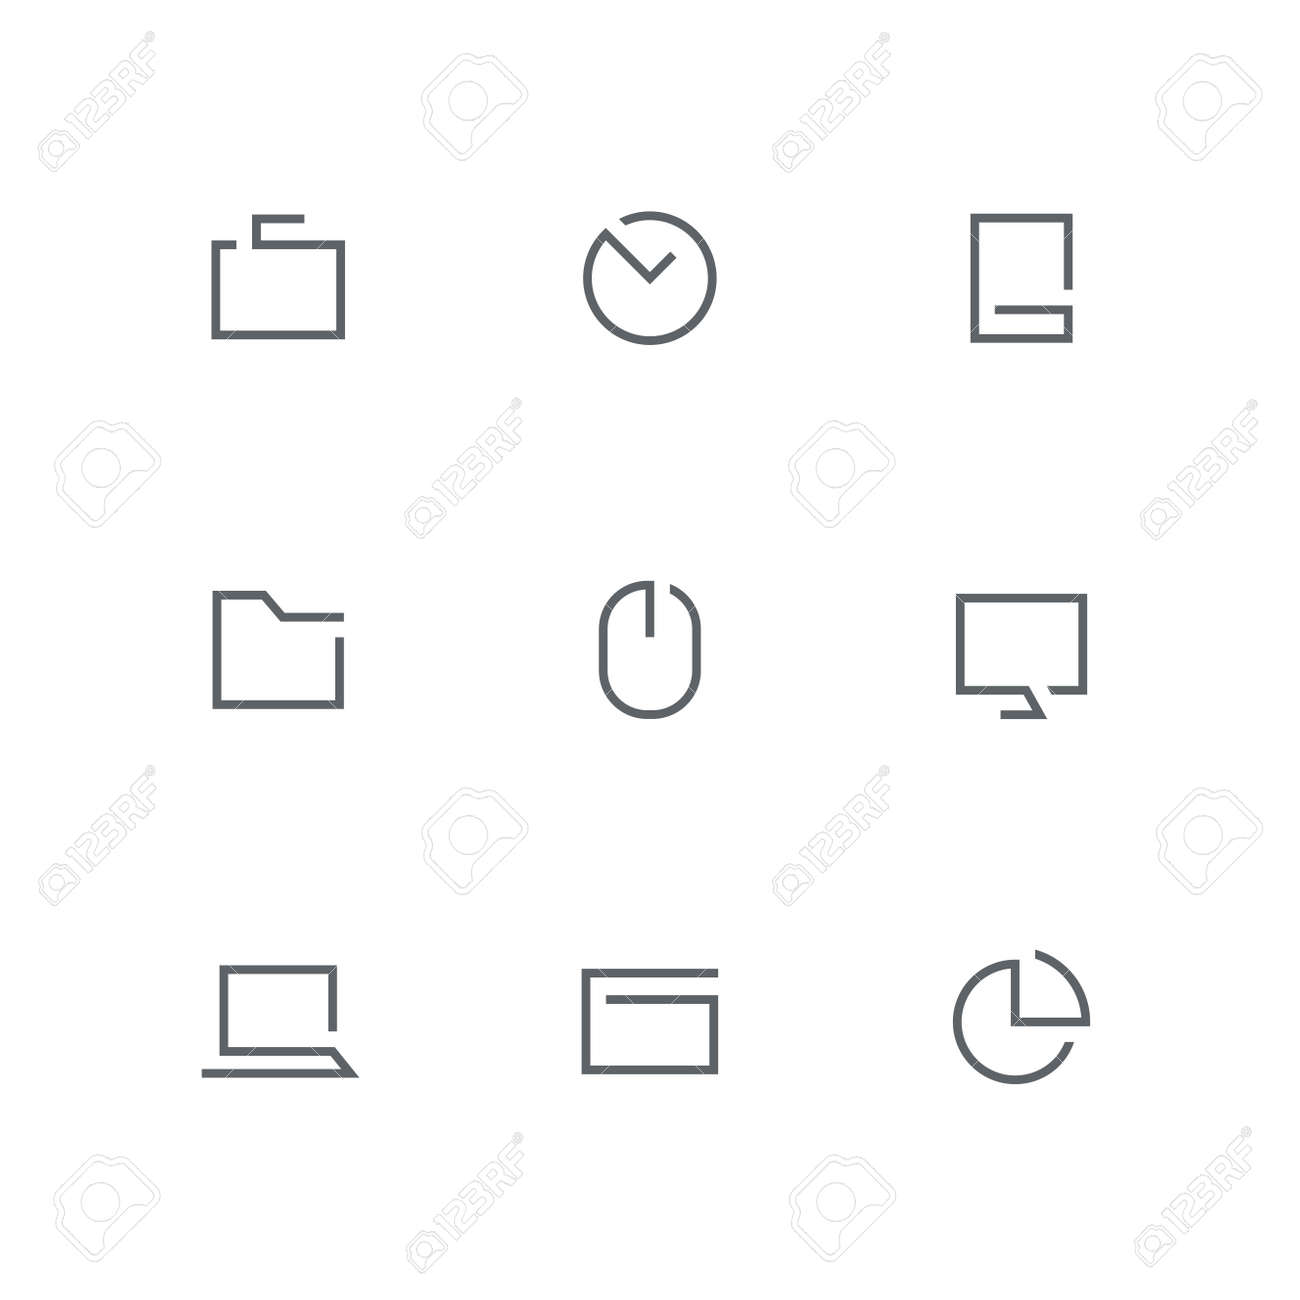 hight resolution of open outline icon set briefcase clock mobile phone folder computer mouse